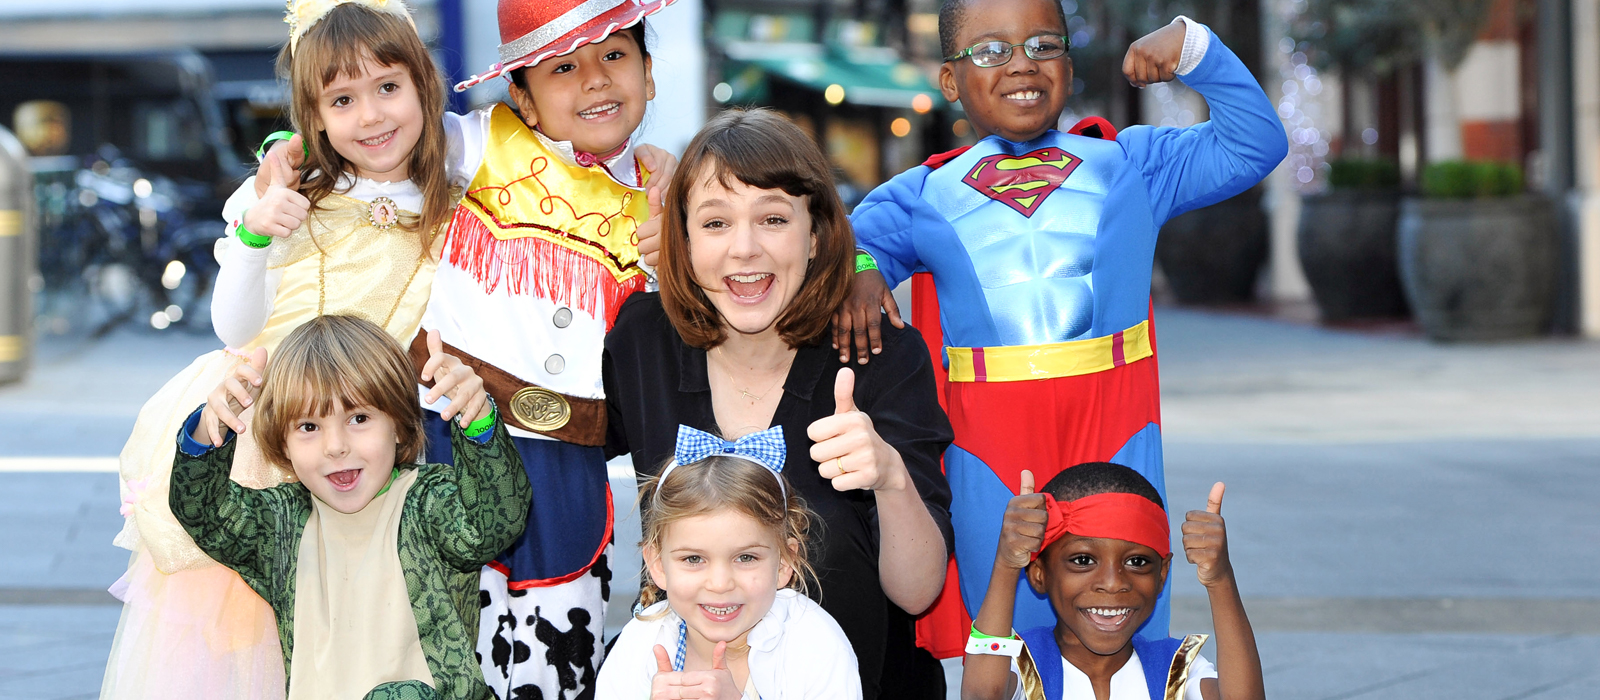 Carey Mulligan with school children dressed up with thumbs up at Into Film festival